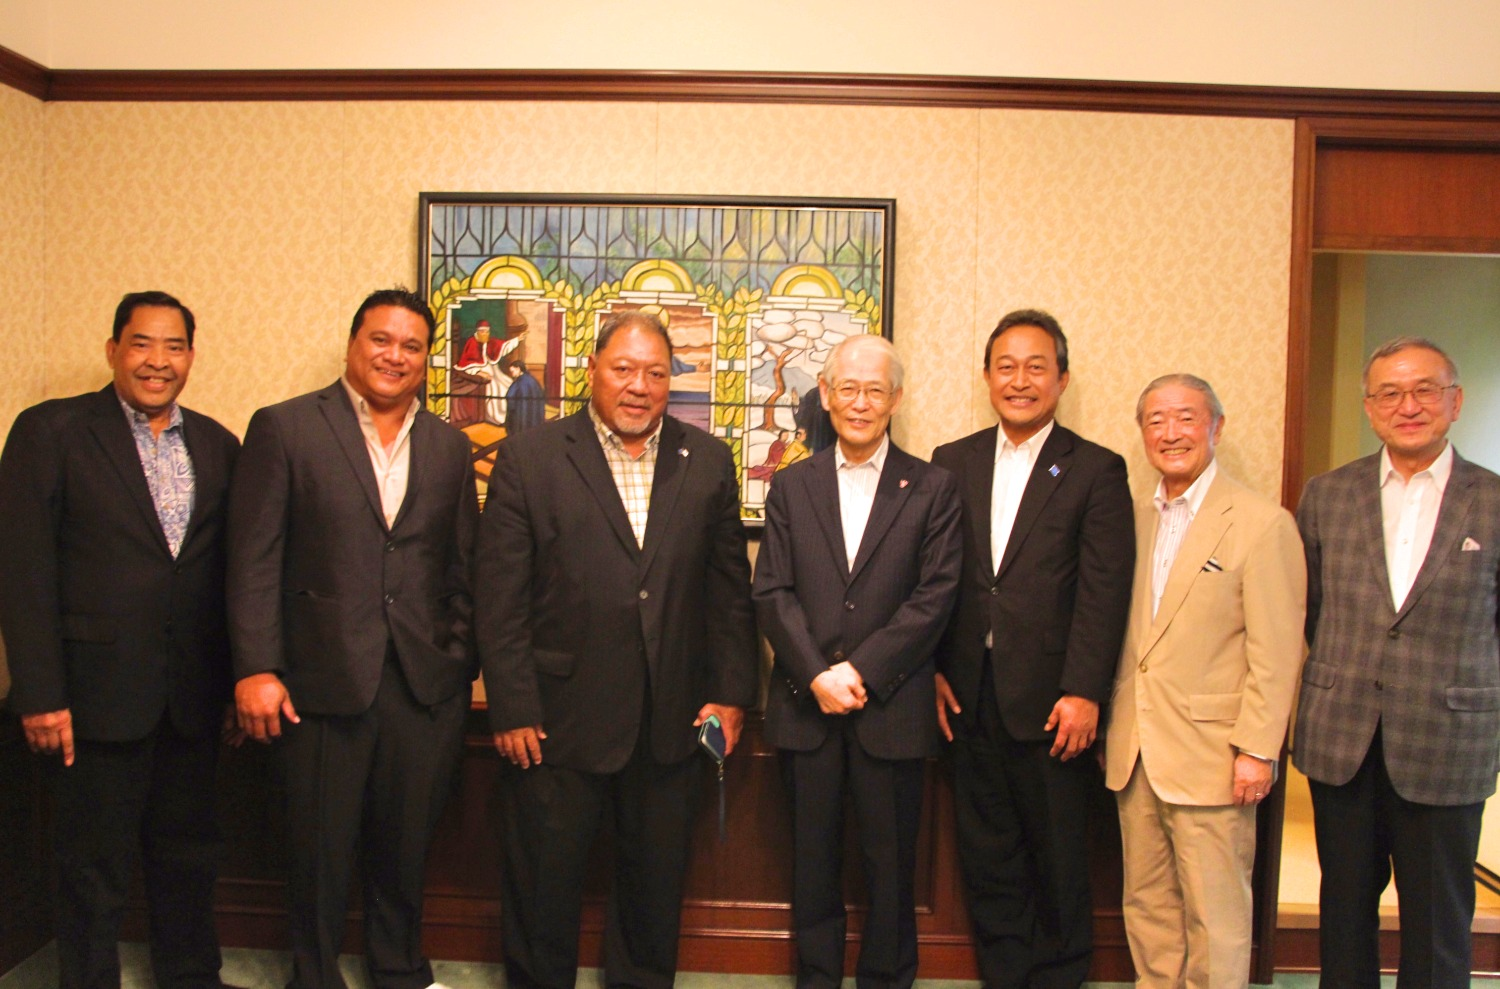 Luncheon with Senators from the Federated States of Micronesia